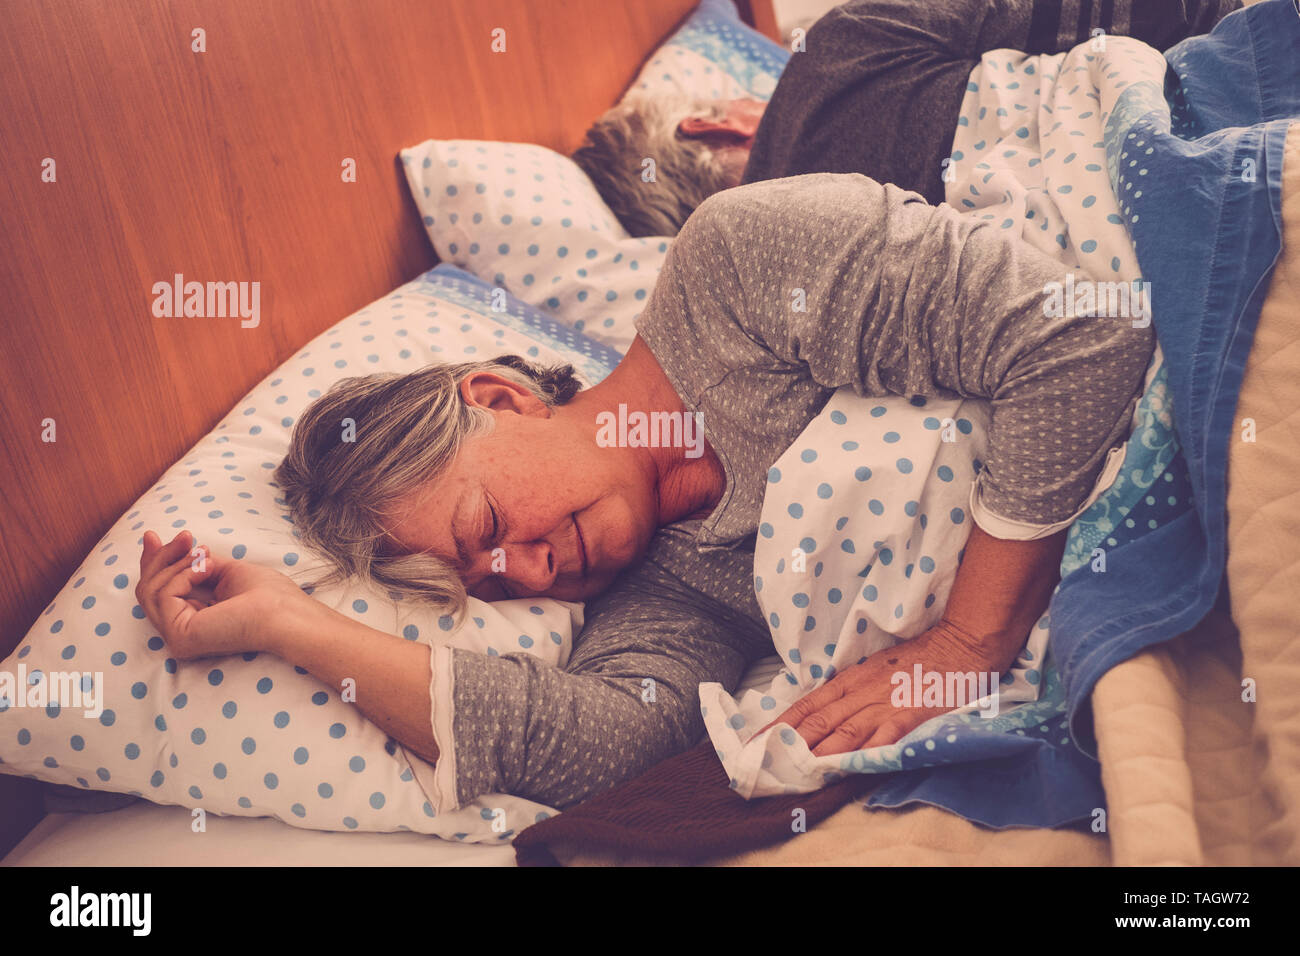 Caucasian people at home - old senior couple sleeping in the bedroom at the morning - retired lifestyle and real life moment - forever together concep Stock Photo